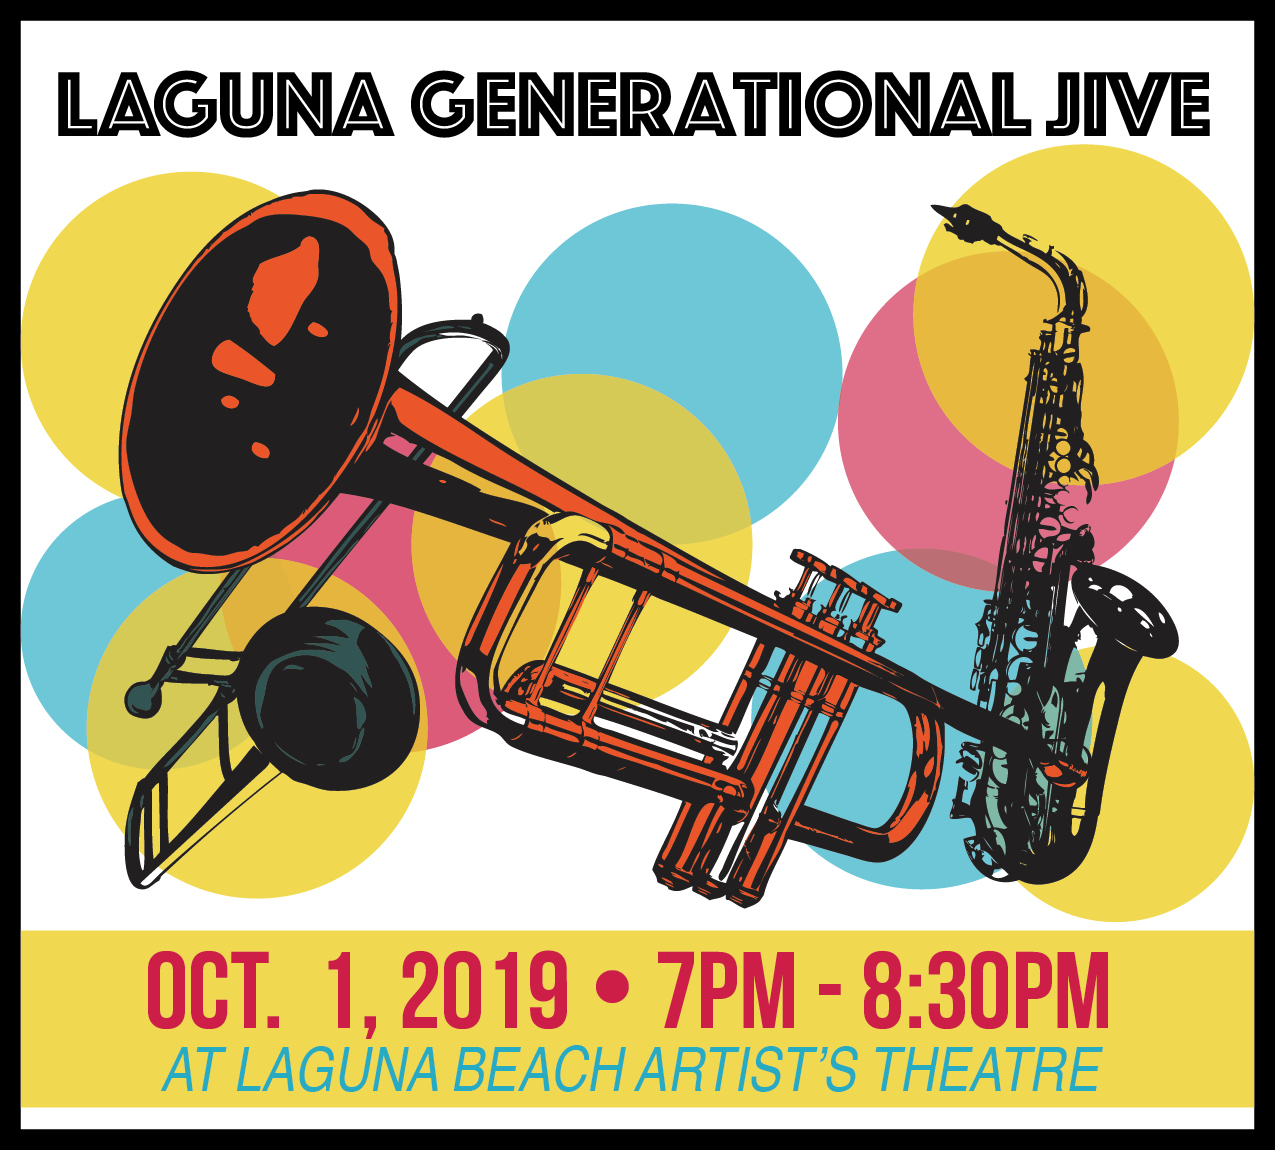 An evening of song and story… - …featuring LBHS alumni stars with select performances by the LBHS Jazz Band.Hosted by Steve and Beth Fitchet Wood of HONKTuesday, October 1, 2019, 7:00-8:30 pmLaguna Beach Artist's Theatre, 625 Park AvenueBenefiting Laguna Beach Live!'s free Music & Kids programsGeneral Admission: adults: $20 presale and $25 at the door; students 18 and under $10VIP: $100 with reserved premiere seating, Meet and Greet, and our profound thanks!